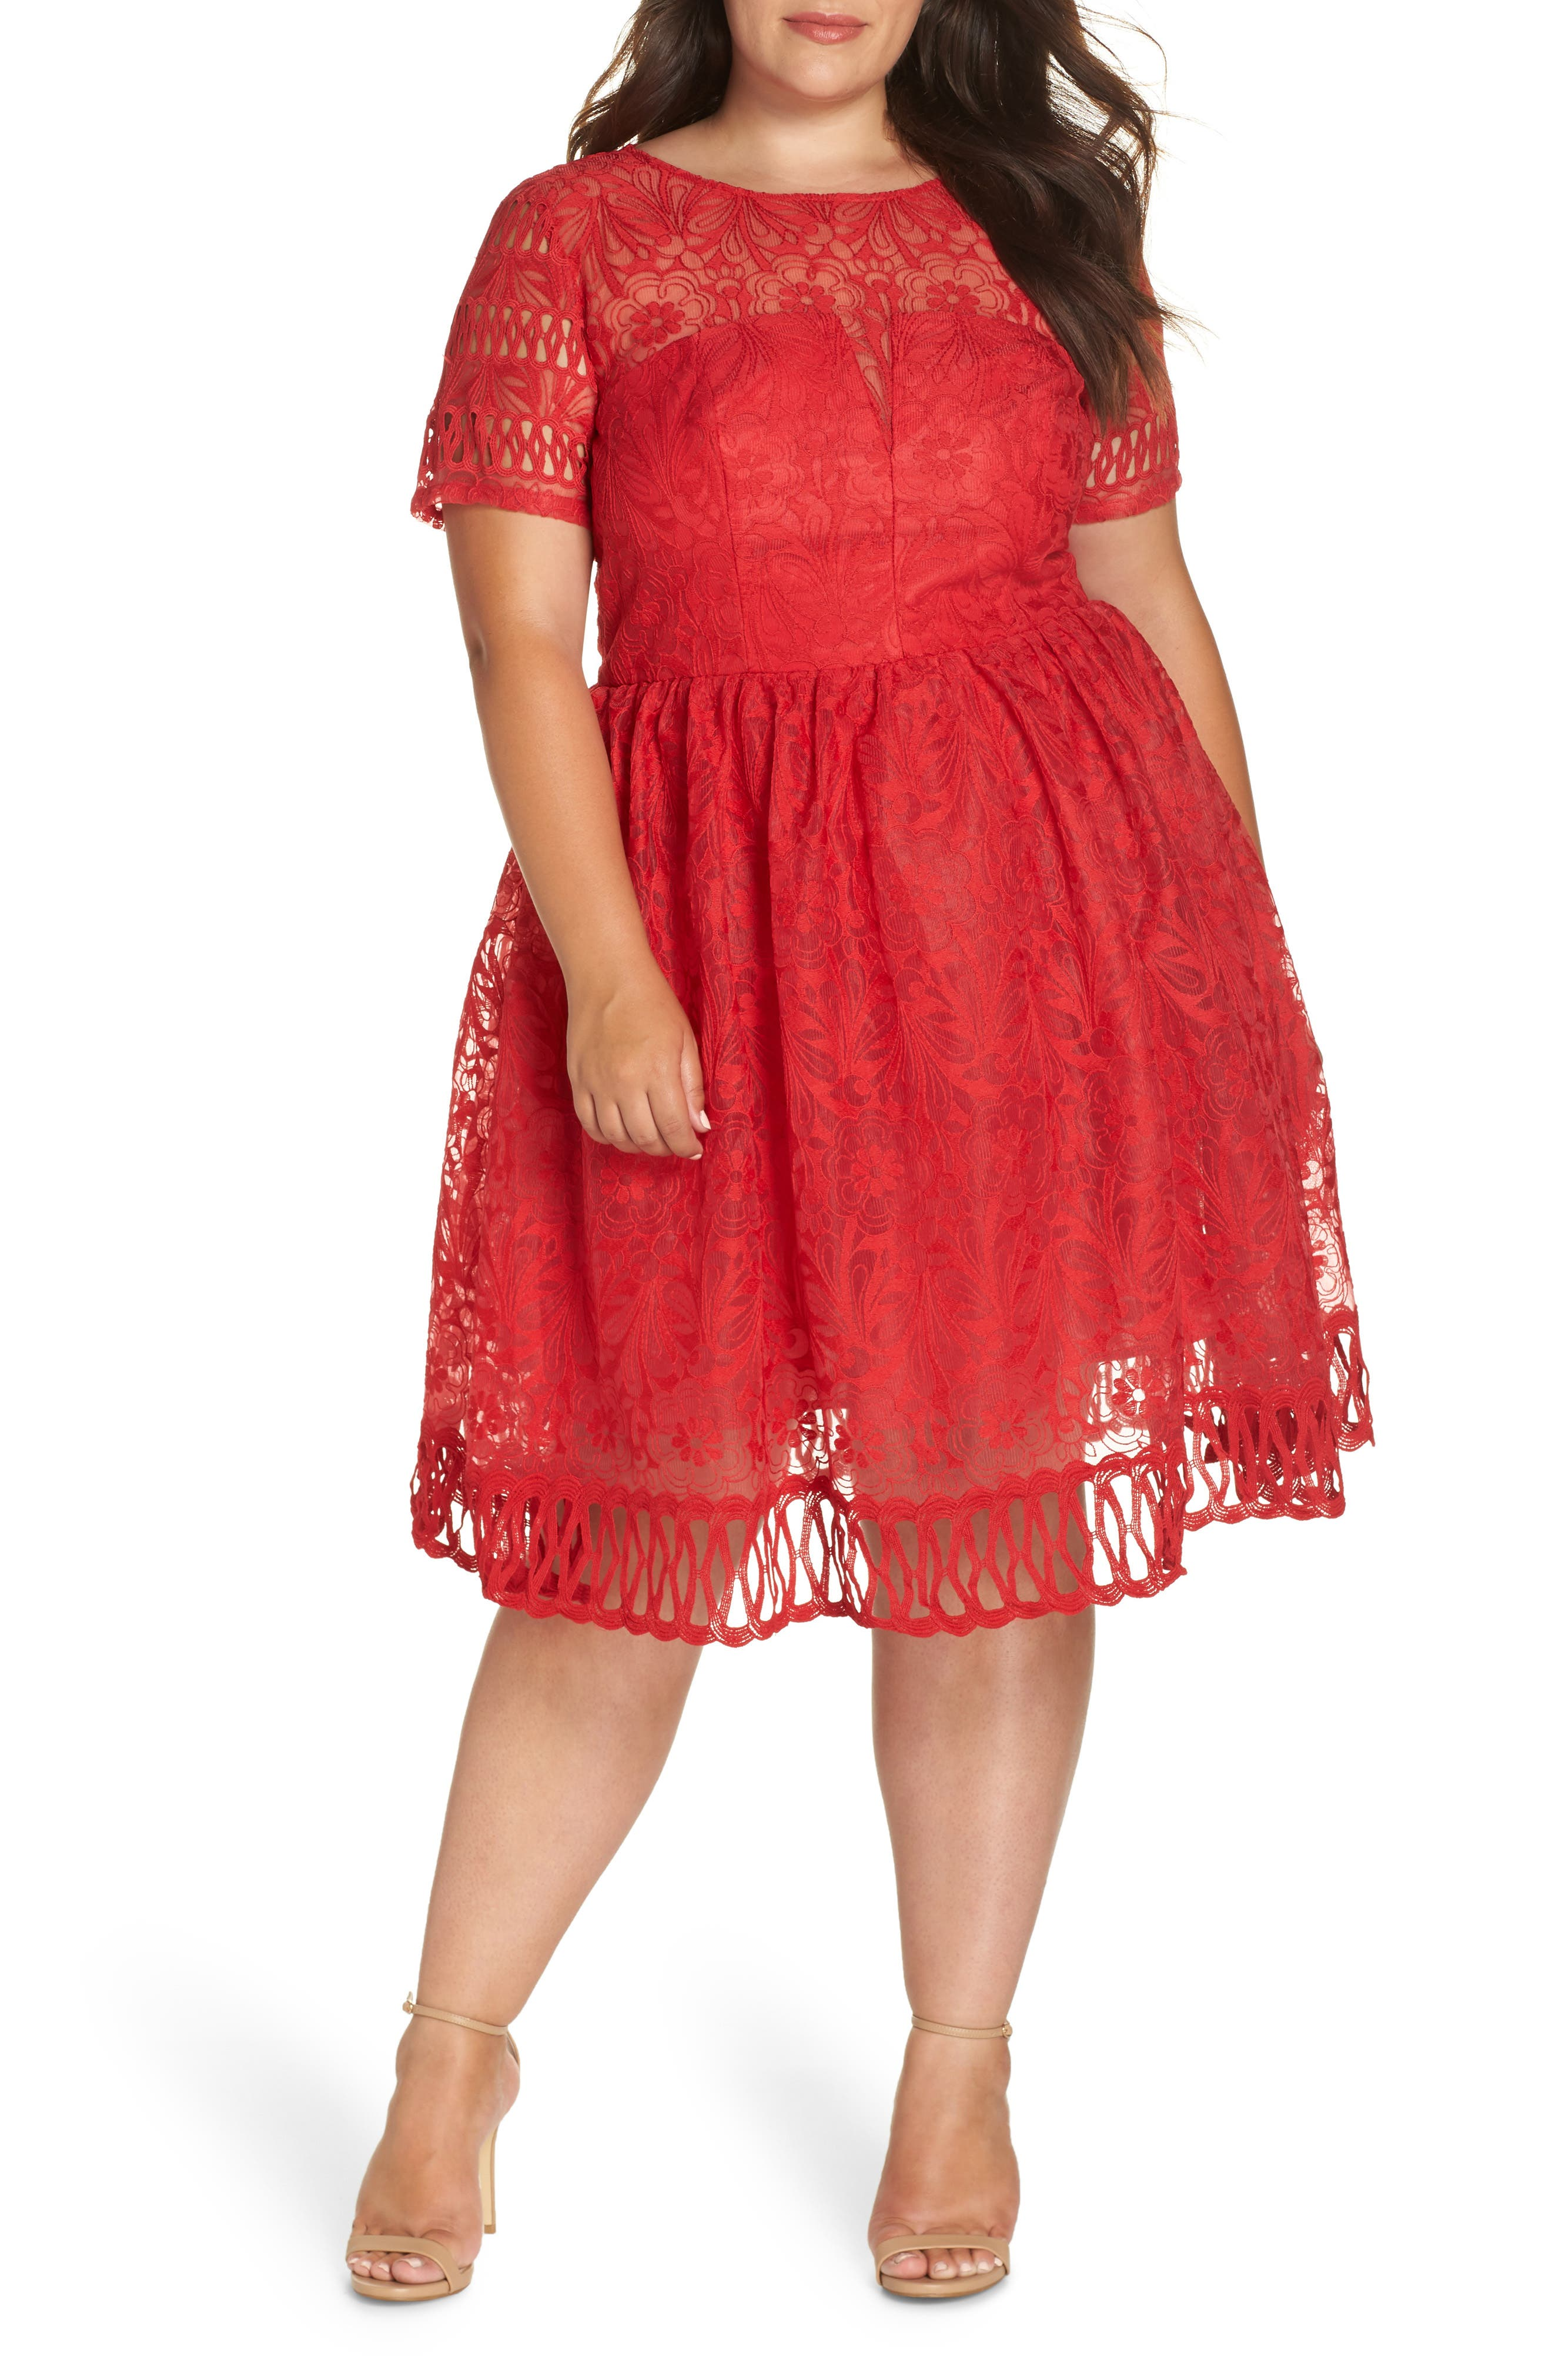 CHI CHI LONDON Crochet Dress, Main, color, RED